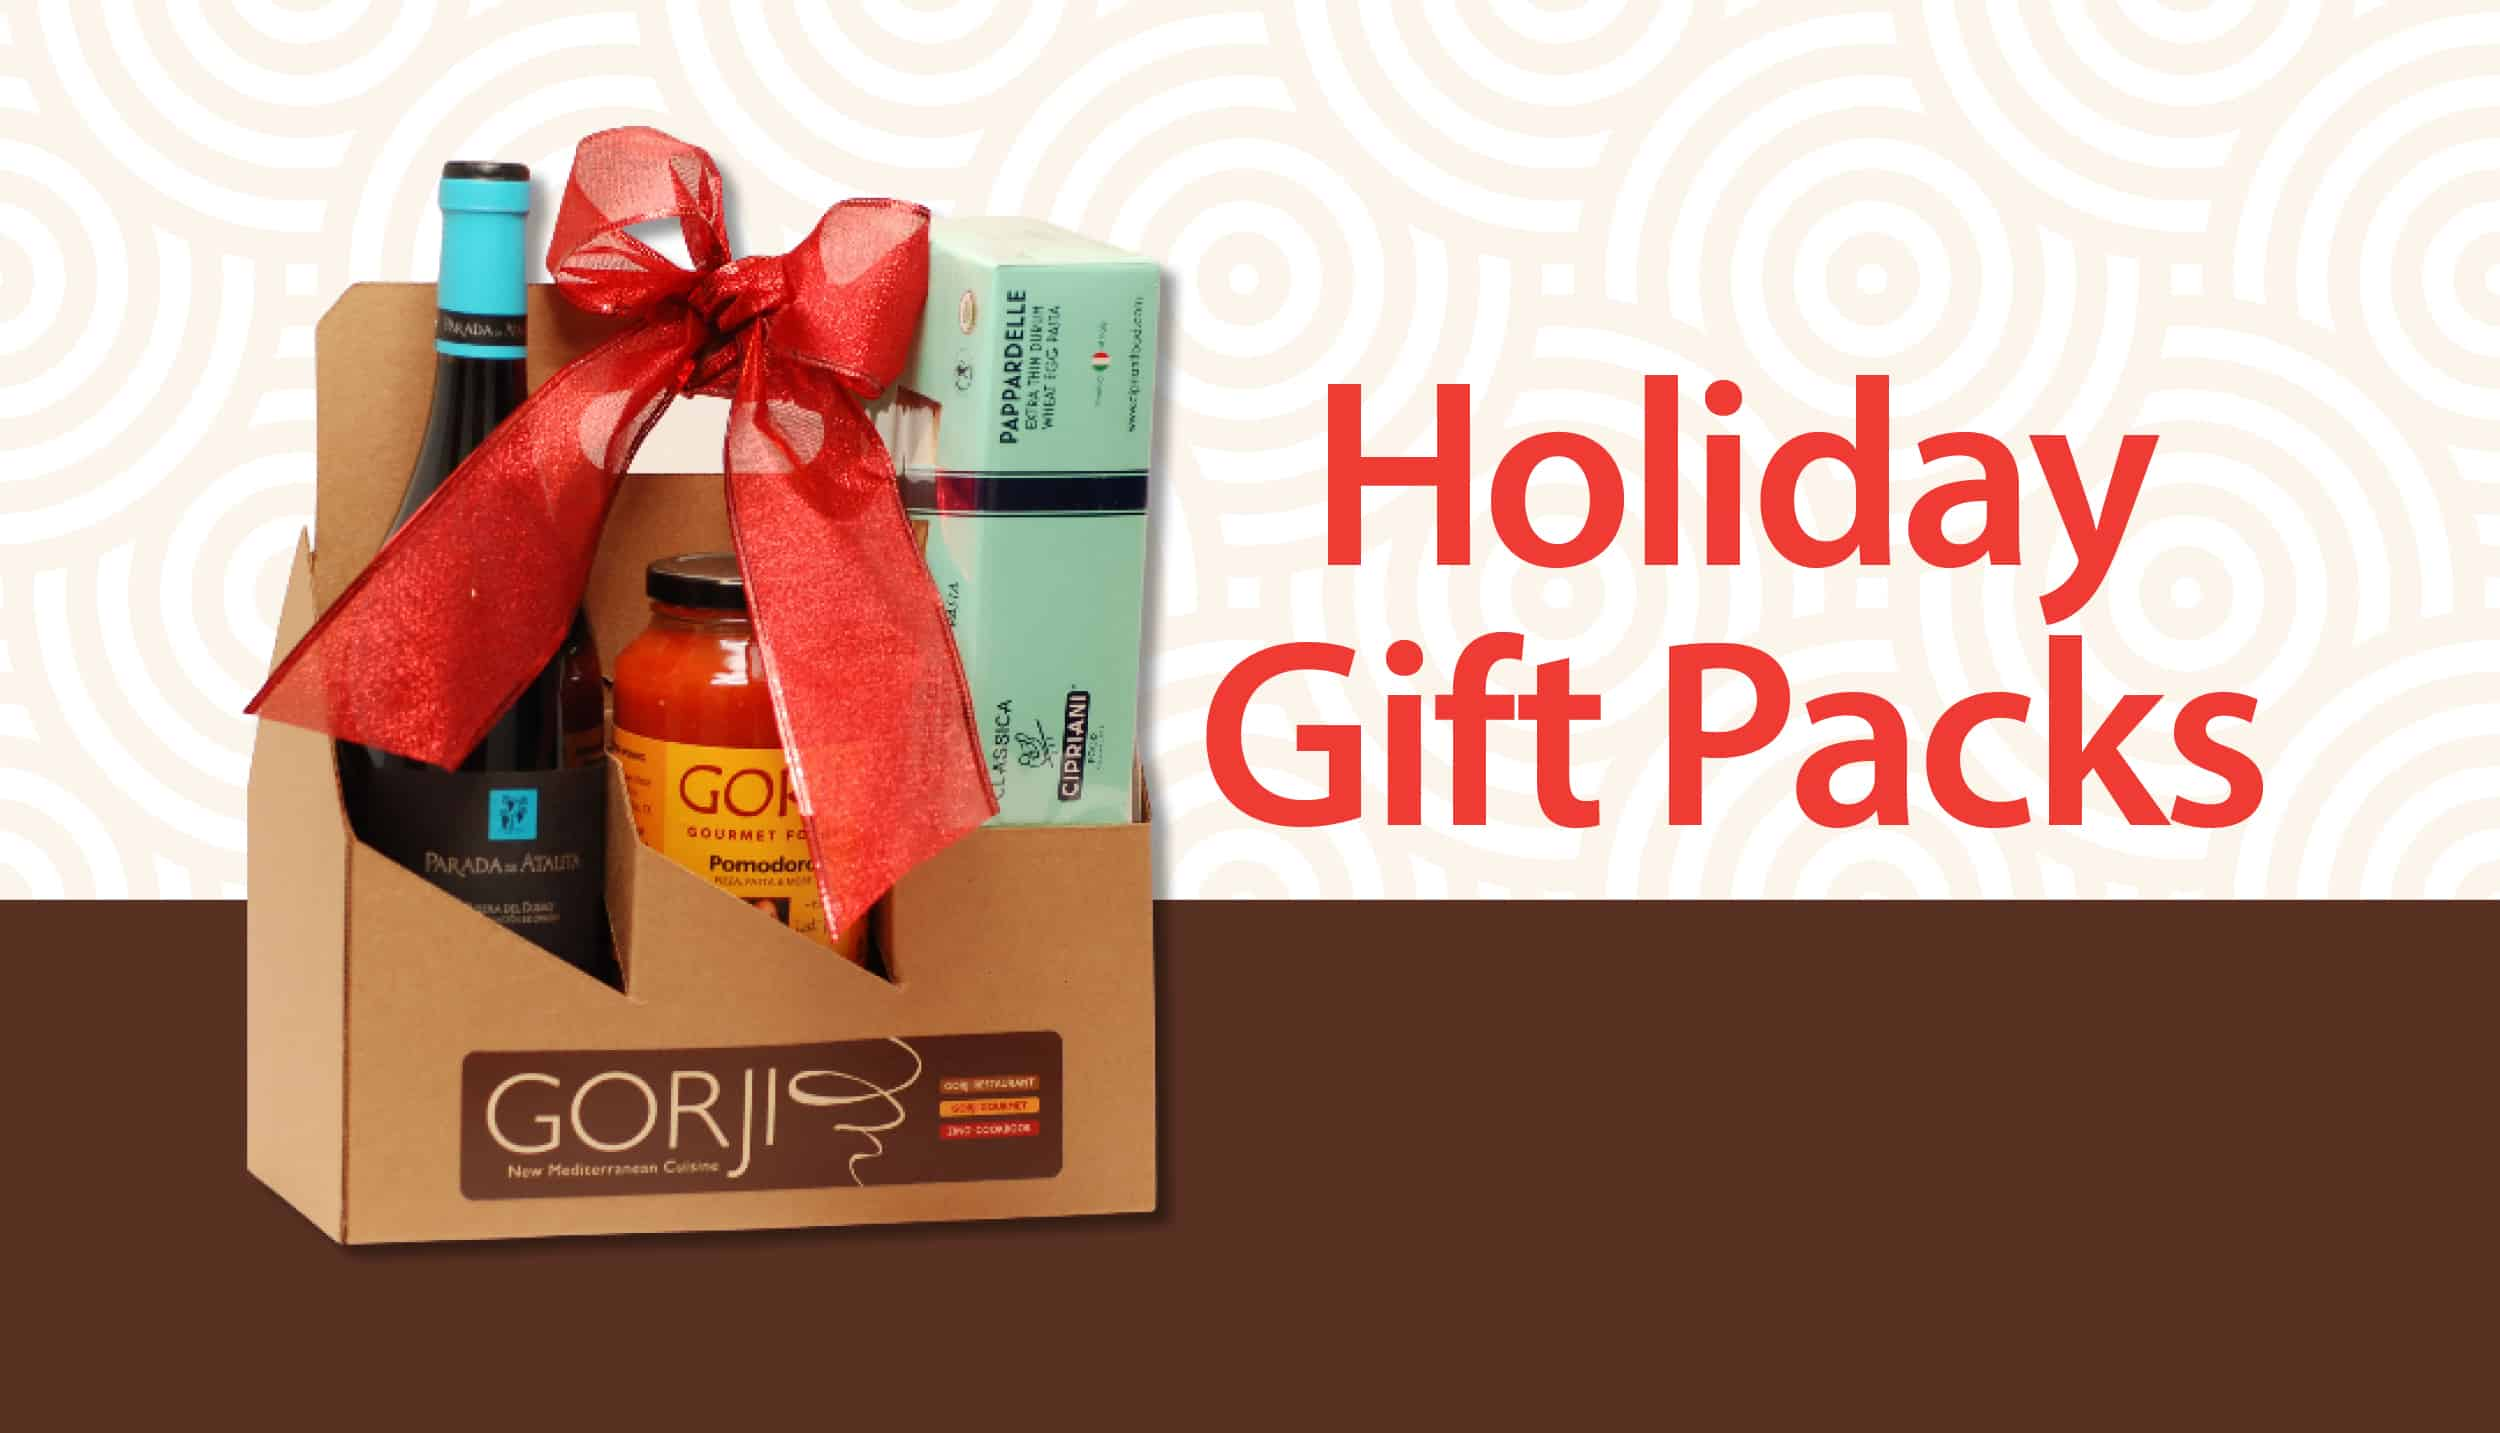 Gorji Gift Packs